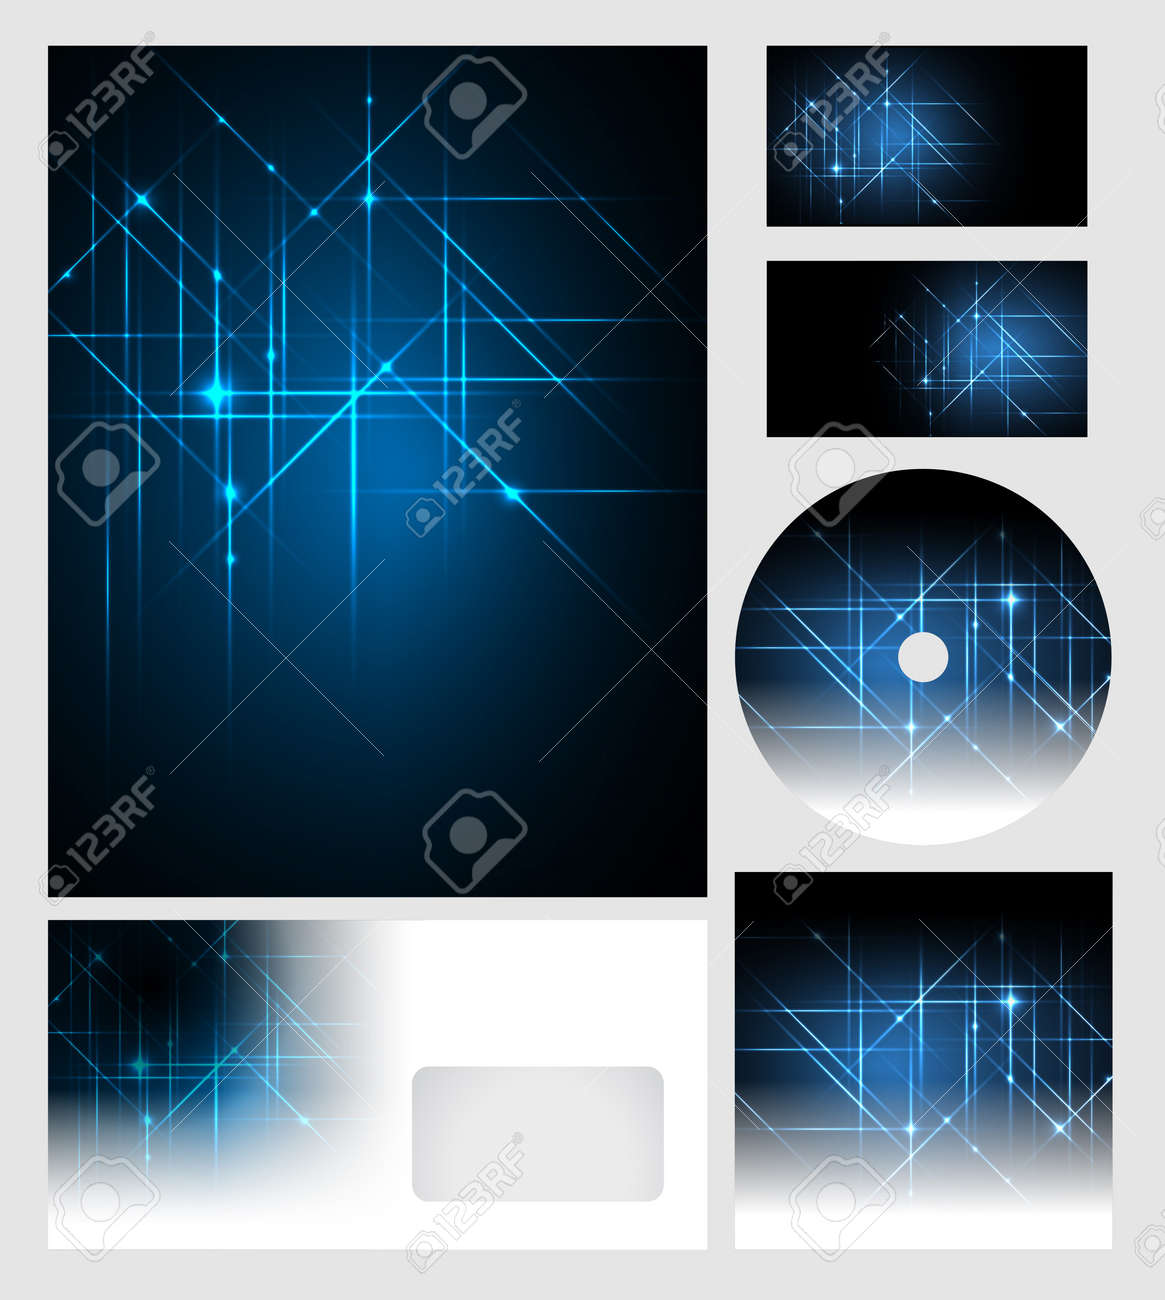 Plantillas De Identidad Corporativa - Vector - Negocio Editable ...